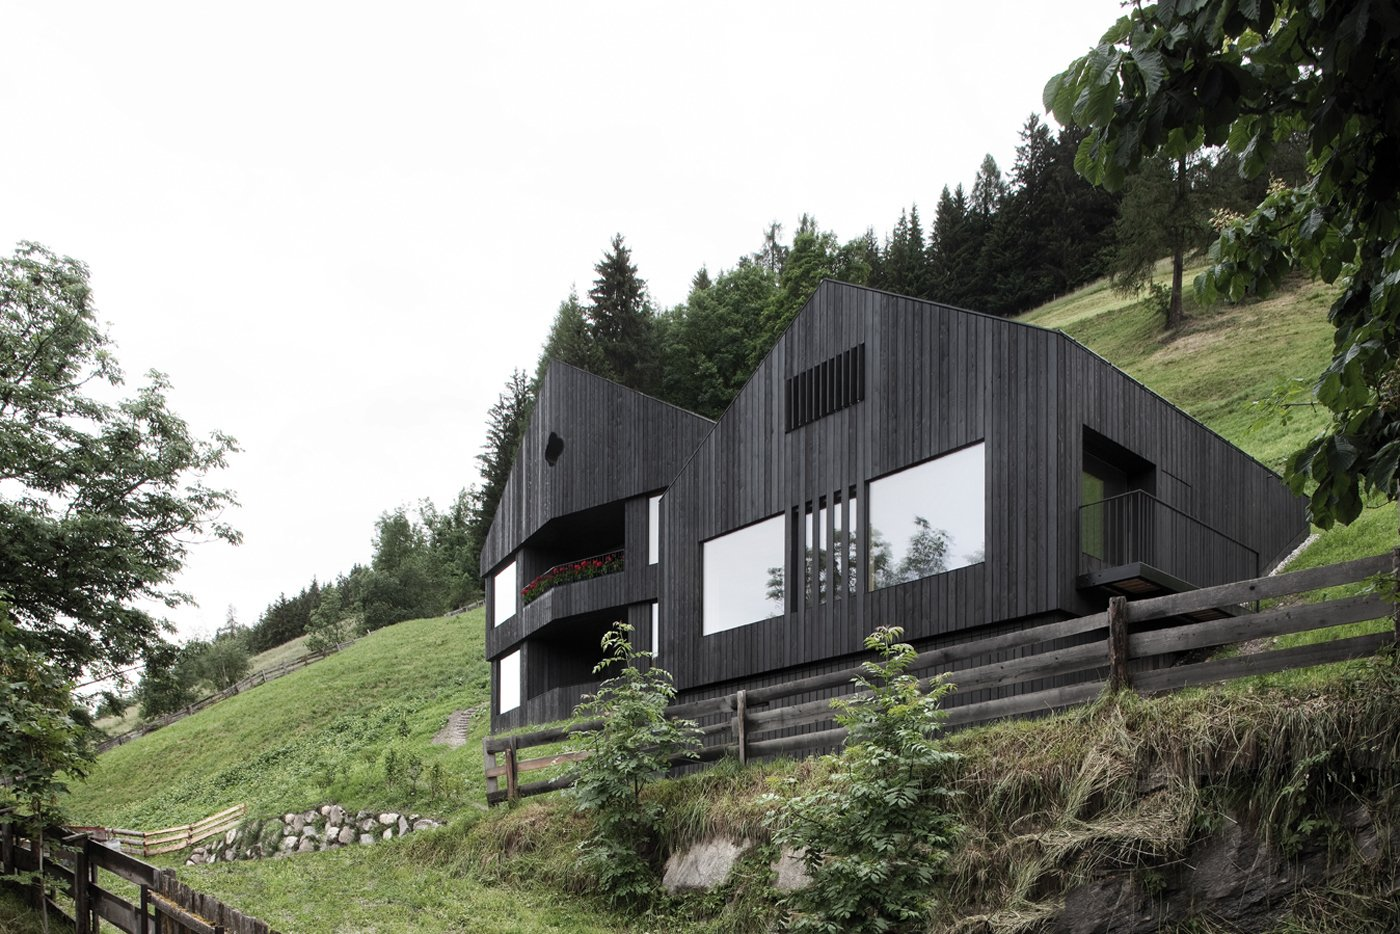 Only local materials were used to build the chalet, including the larch wood cladding of the exterior, to reinforce the connection between indoors and outdoors. Tagged: Exterior, Metal Roof Material, House, and Wood Siding Material.  La Pedevilla by Dwell